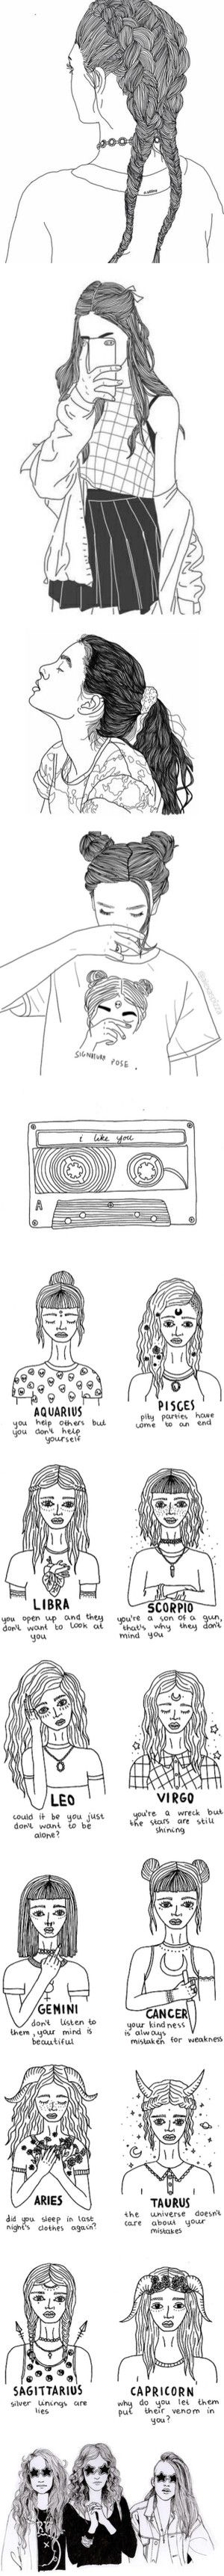 """Black and White Doodles/Sketches - Pt. 1"" by guedesss ❤ liked on Polyvore"